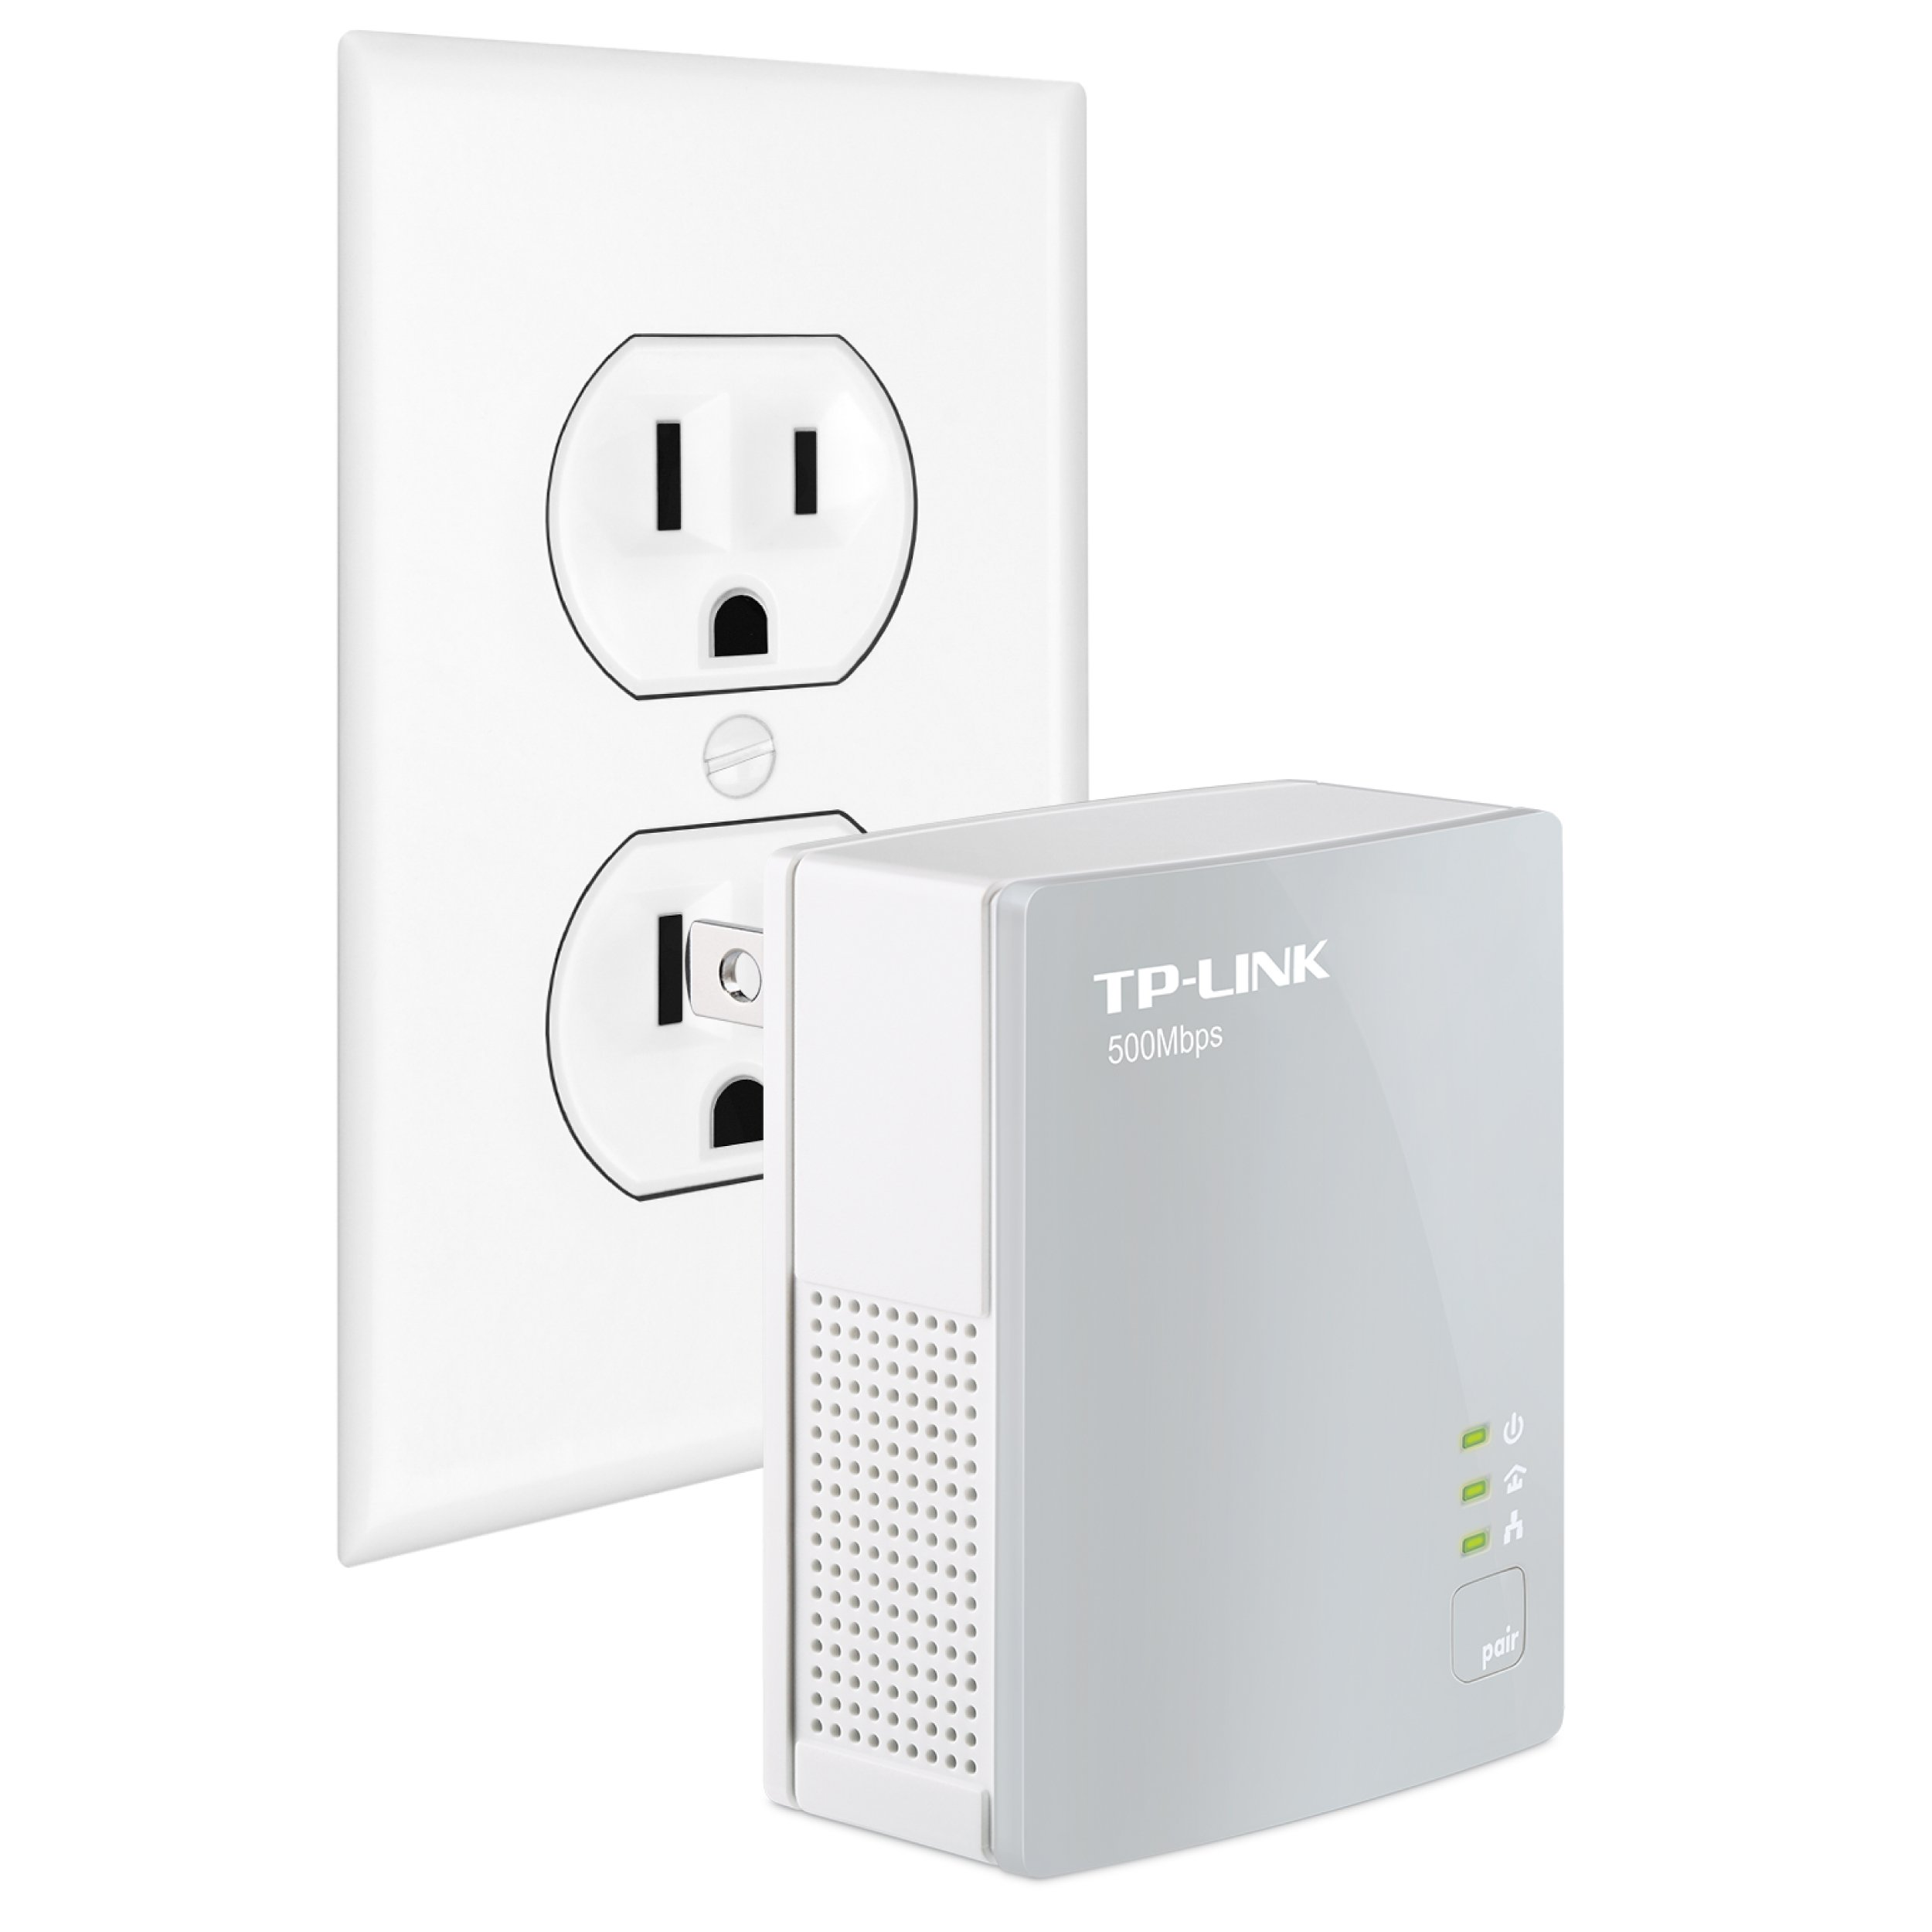 TP-Link AV500 Nano Powerline Adapter, up to 500Mbps (TL-PA4010) by TP-Link